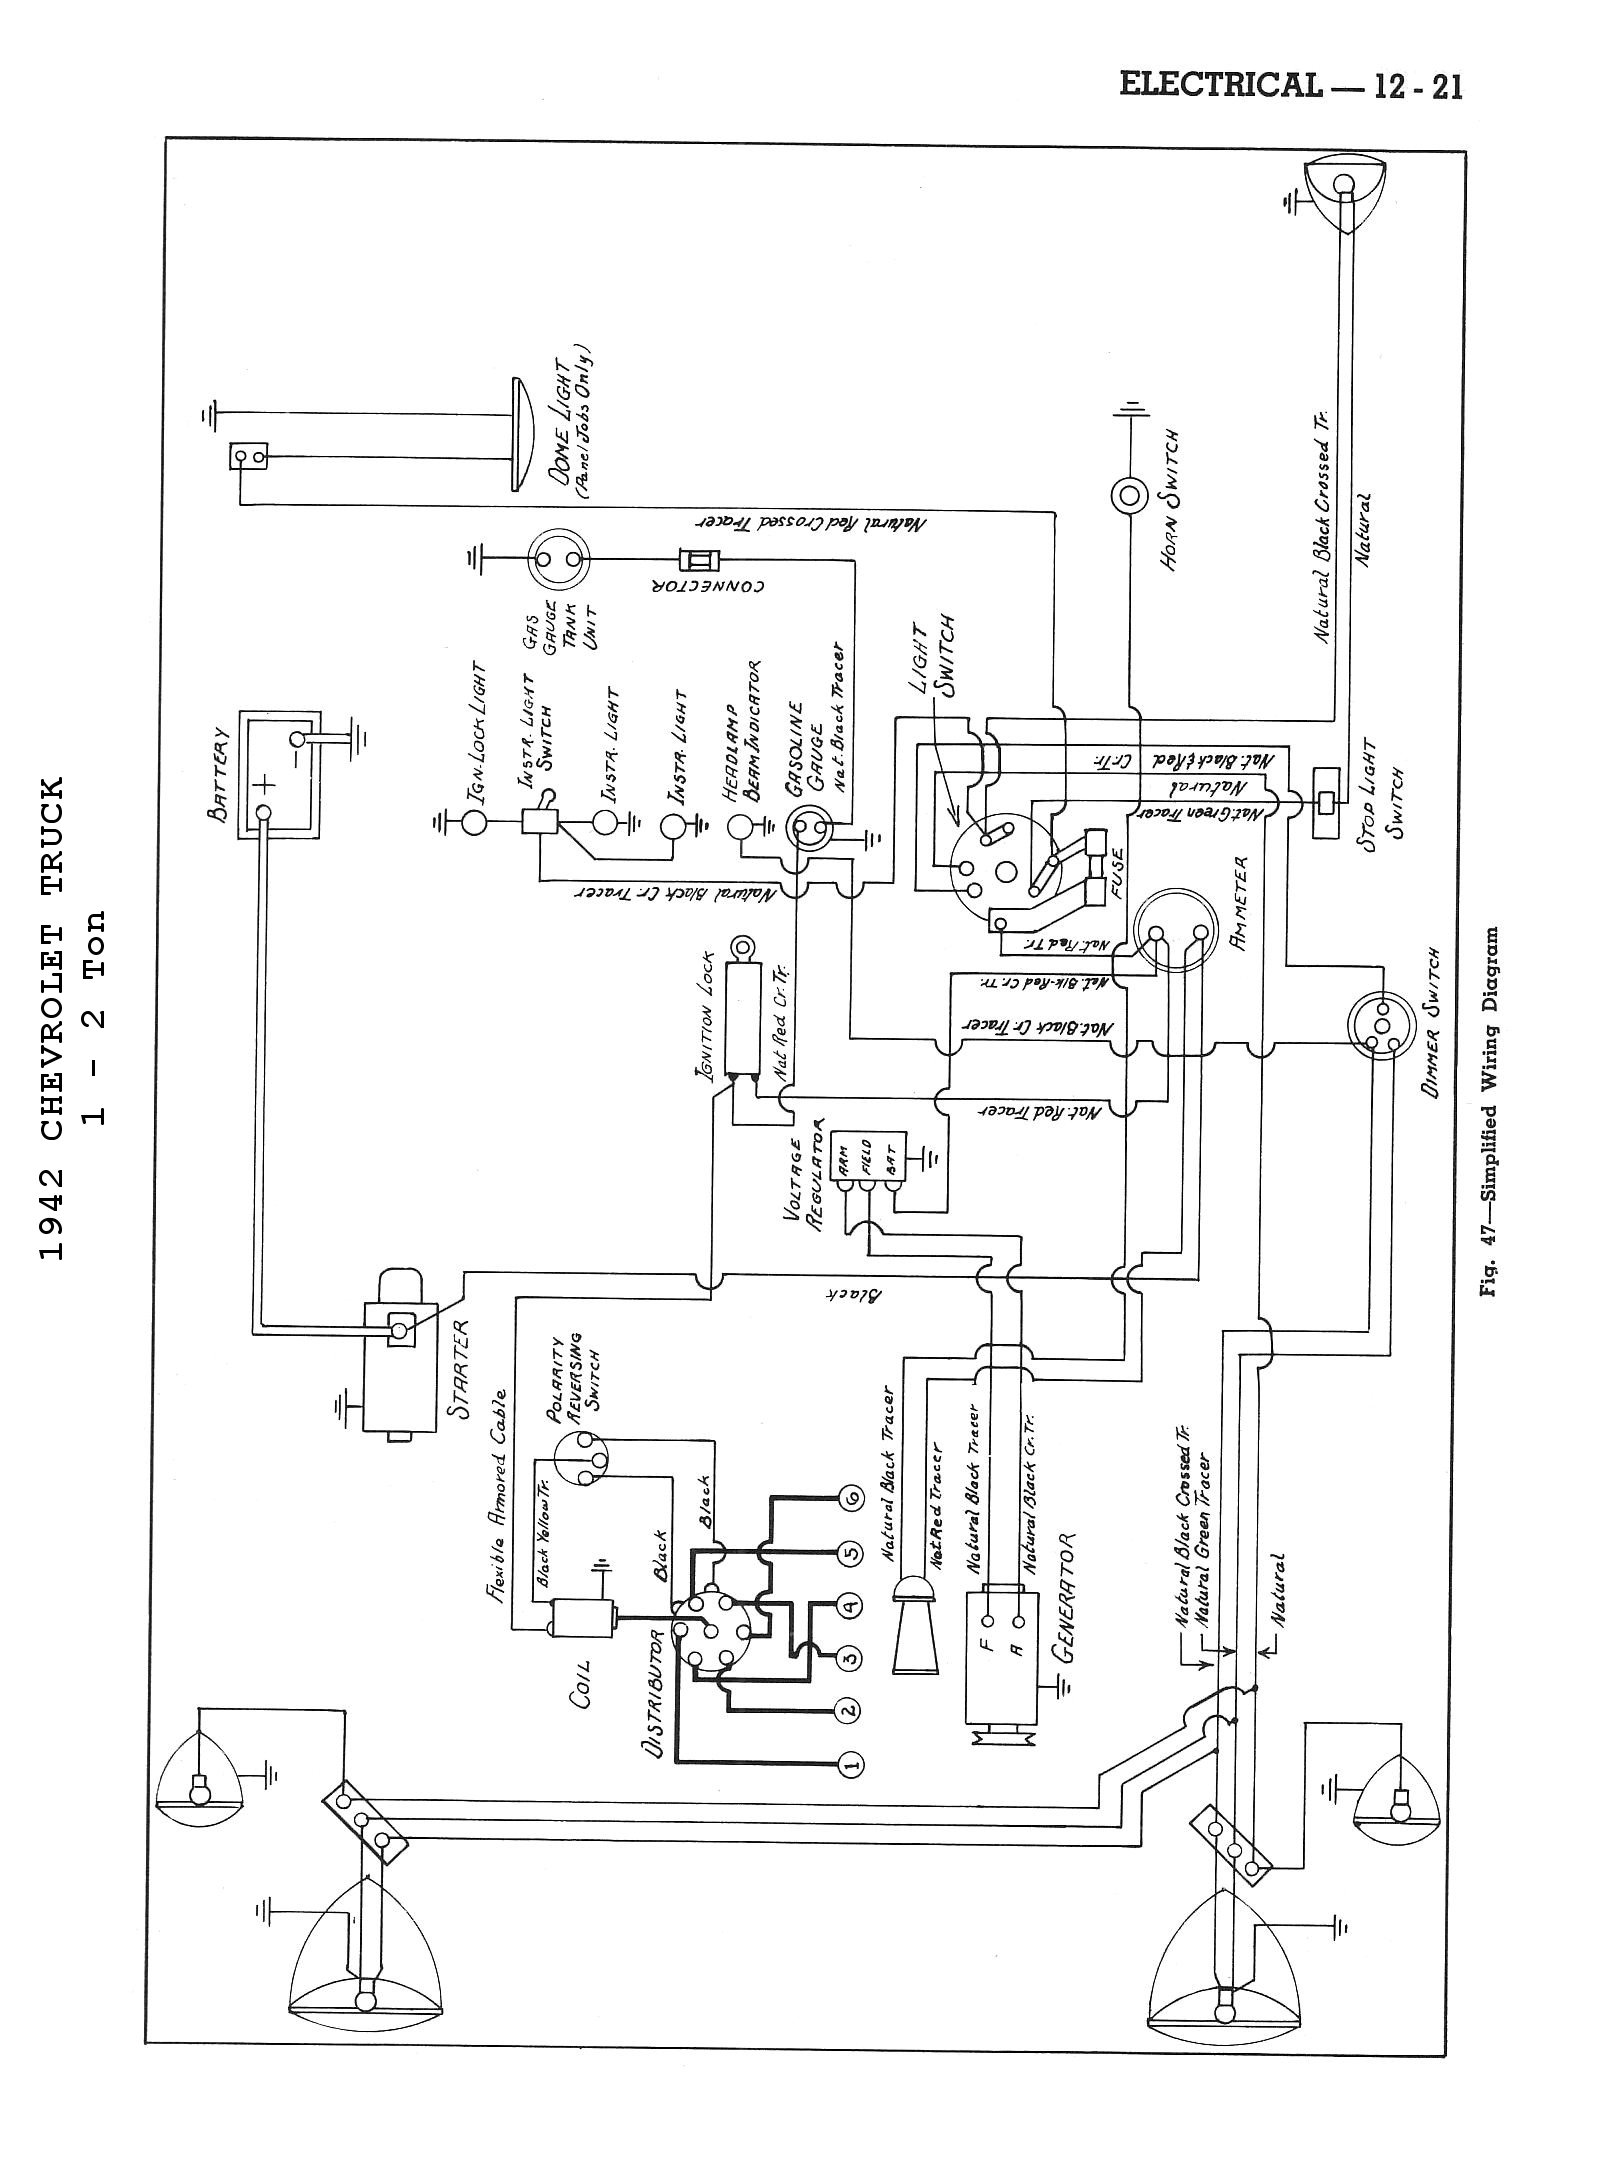 chevy wiring diagrams 1942 body wiring diagram · 1942 4x2 truck wiring